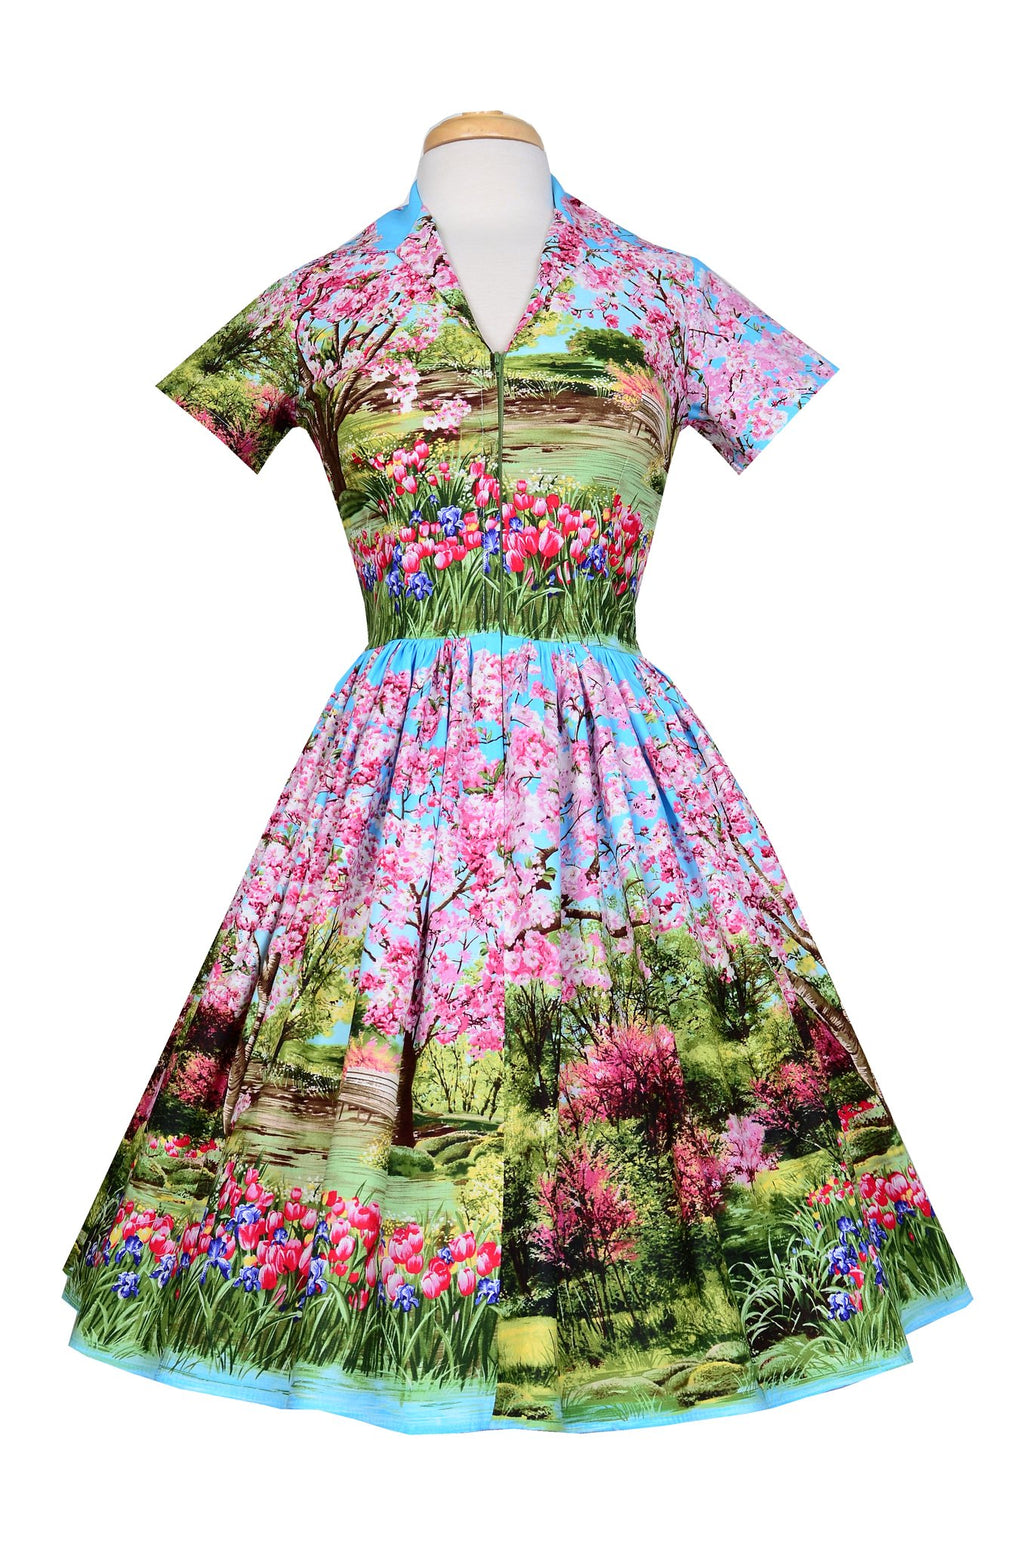 Fifi Dress in Cherry Tree Lane